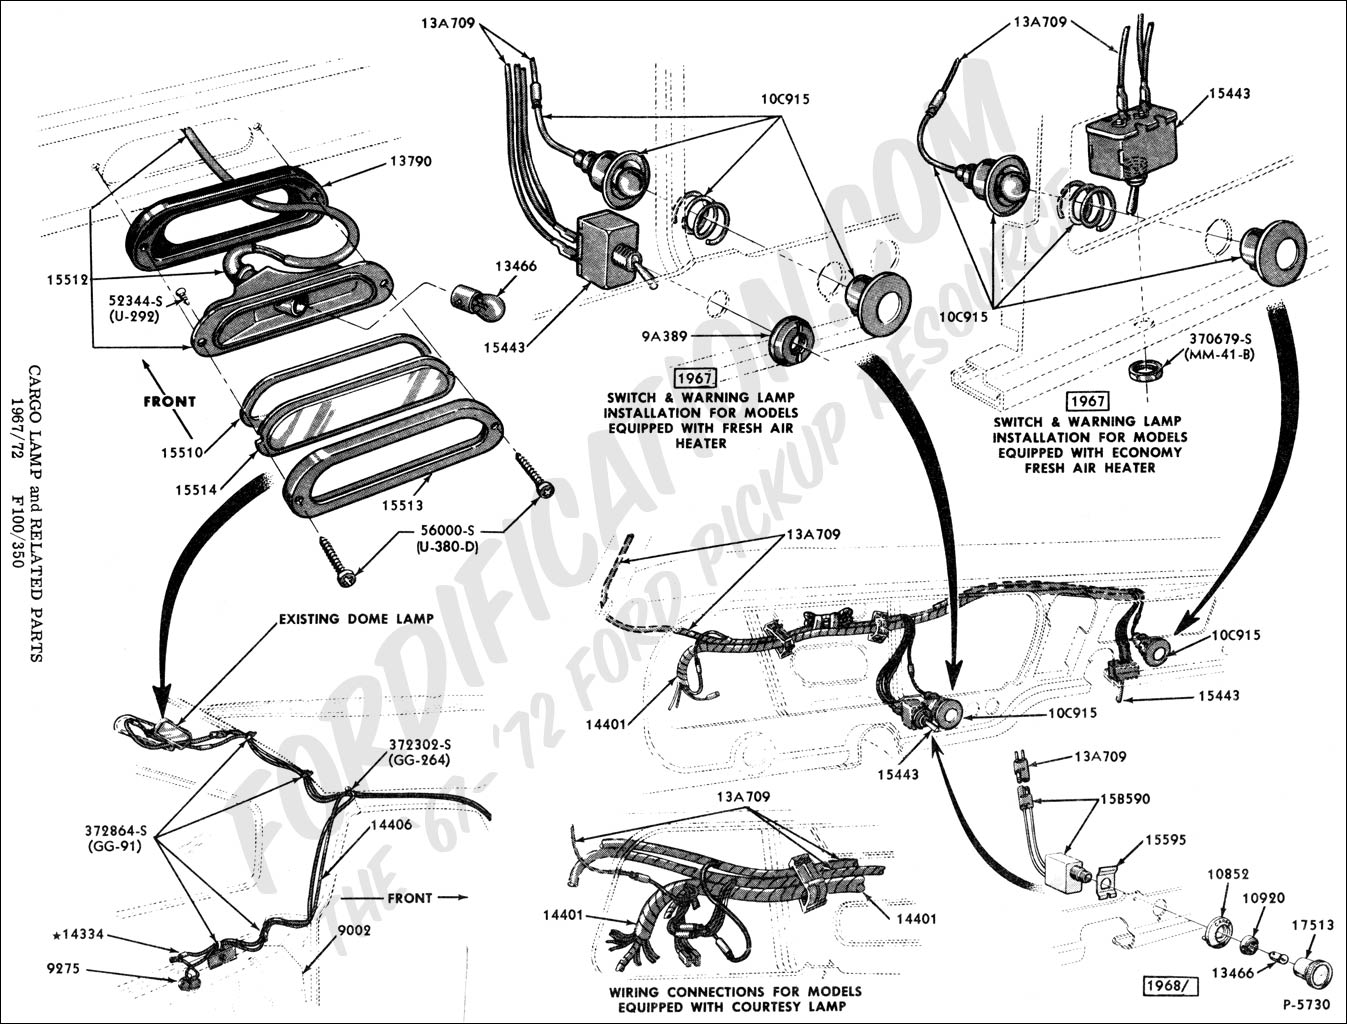 1999 Ford F250 Fuse Box Diagram In Cab Wiring Library Flex Steering Column Truck Technical Drawings And Schematics Section I Electrical